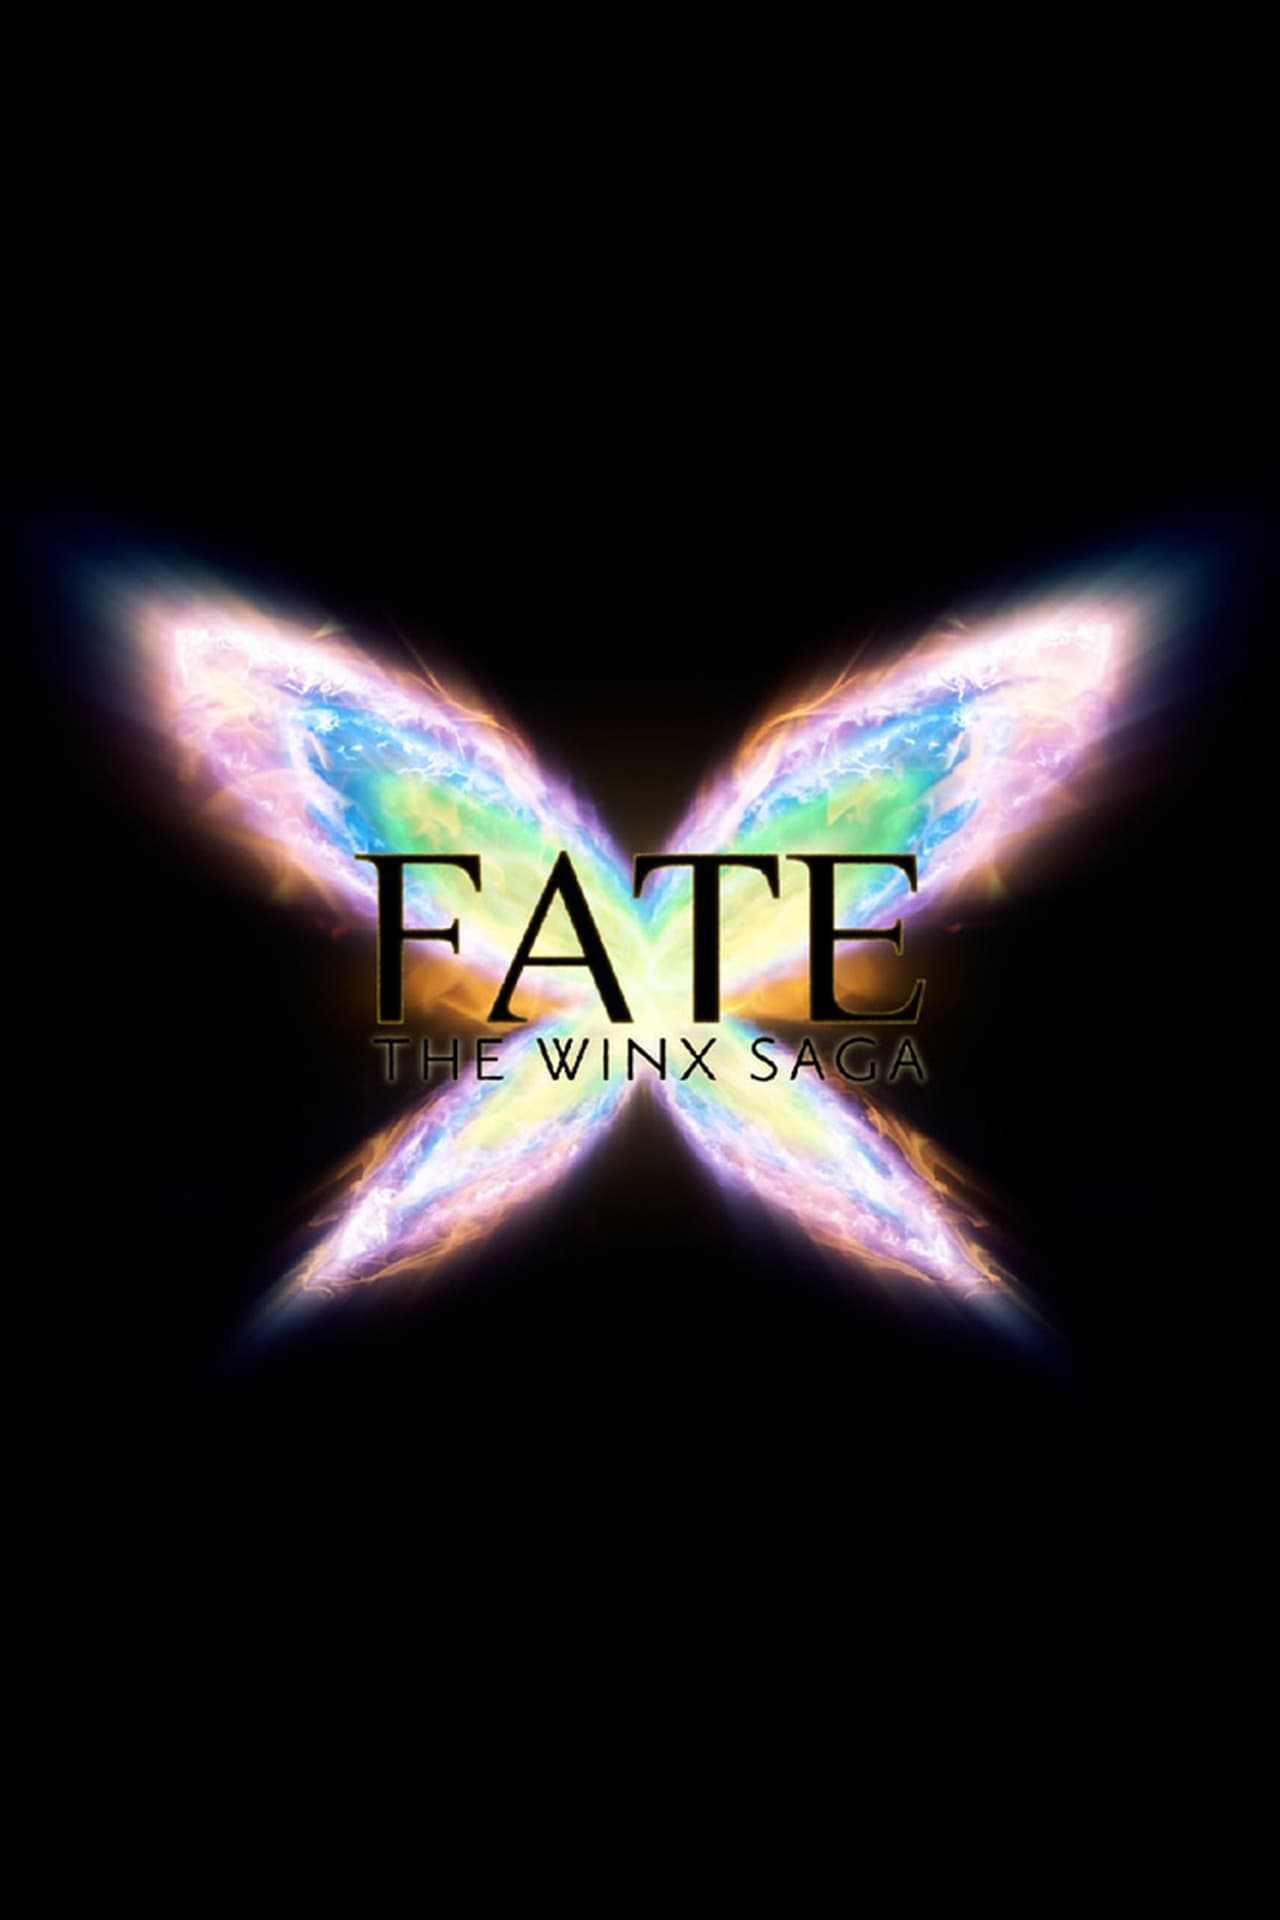 Fate: The Winx Saga (season 1)